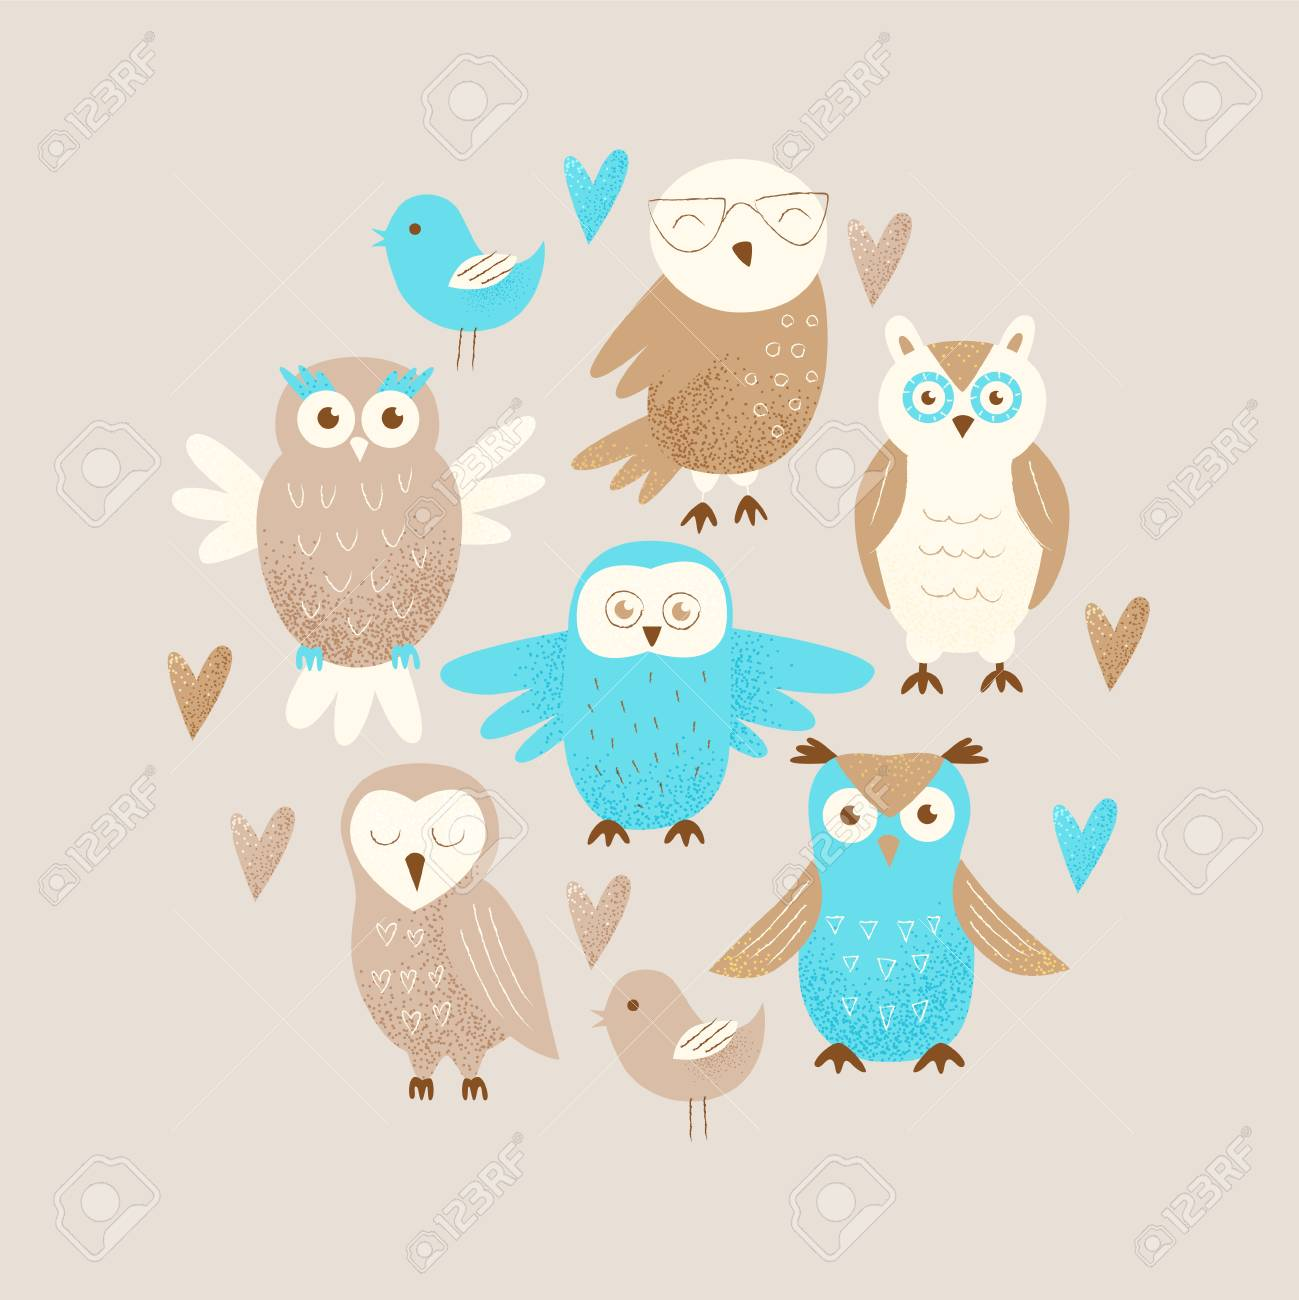 Cute Owl Decor Cute Owl Hand Drawn Design Concept Celebration Decor